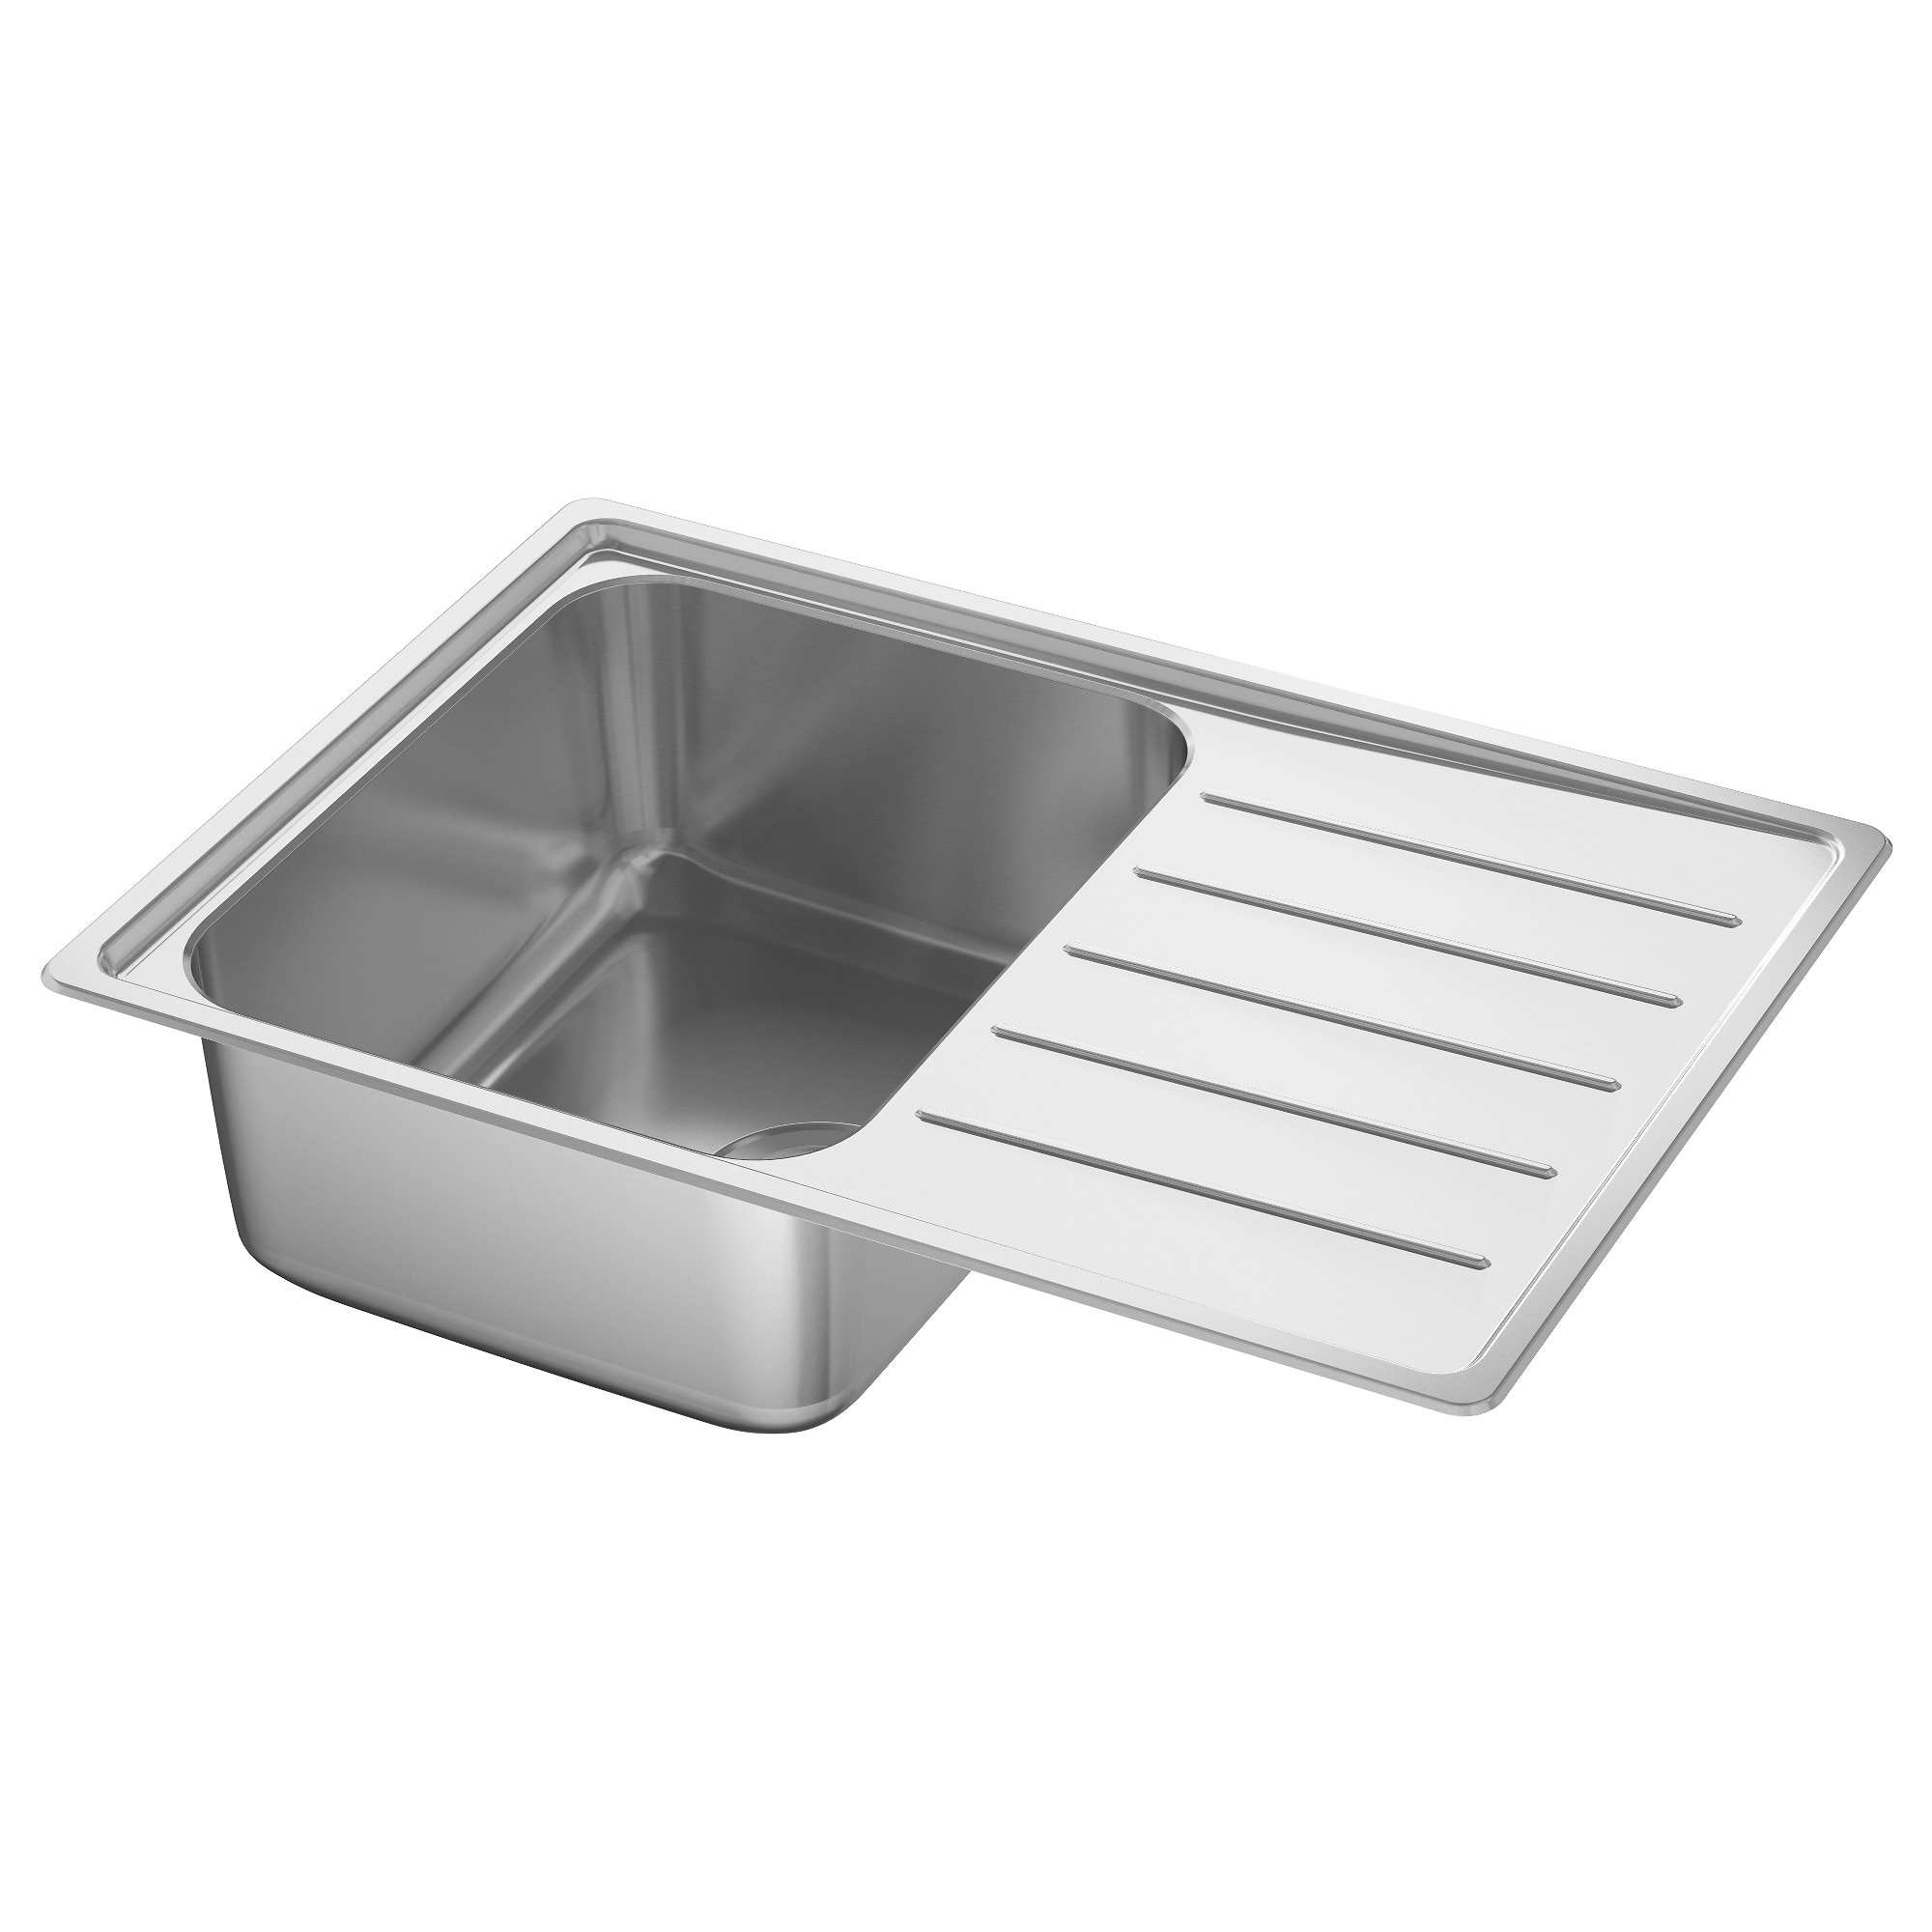 VATTUDALEN Inset sink 1 bowl with drainboard IKEA